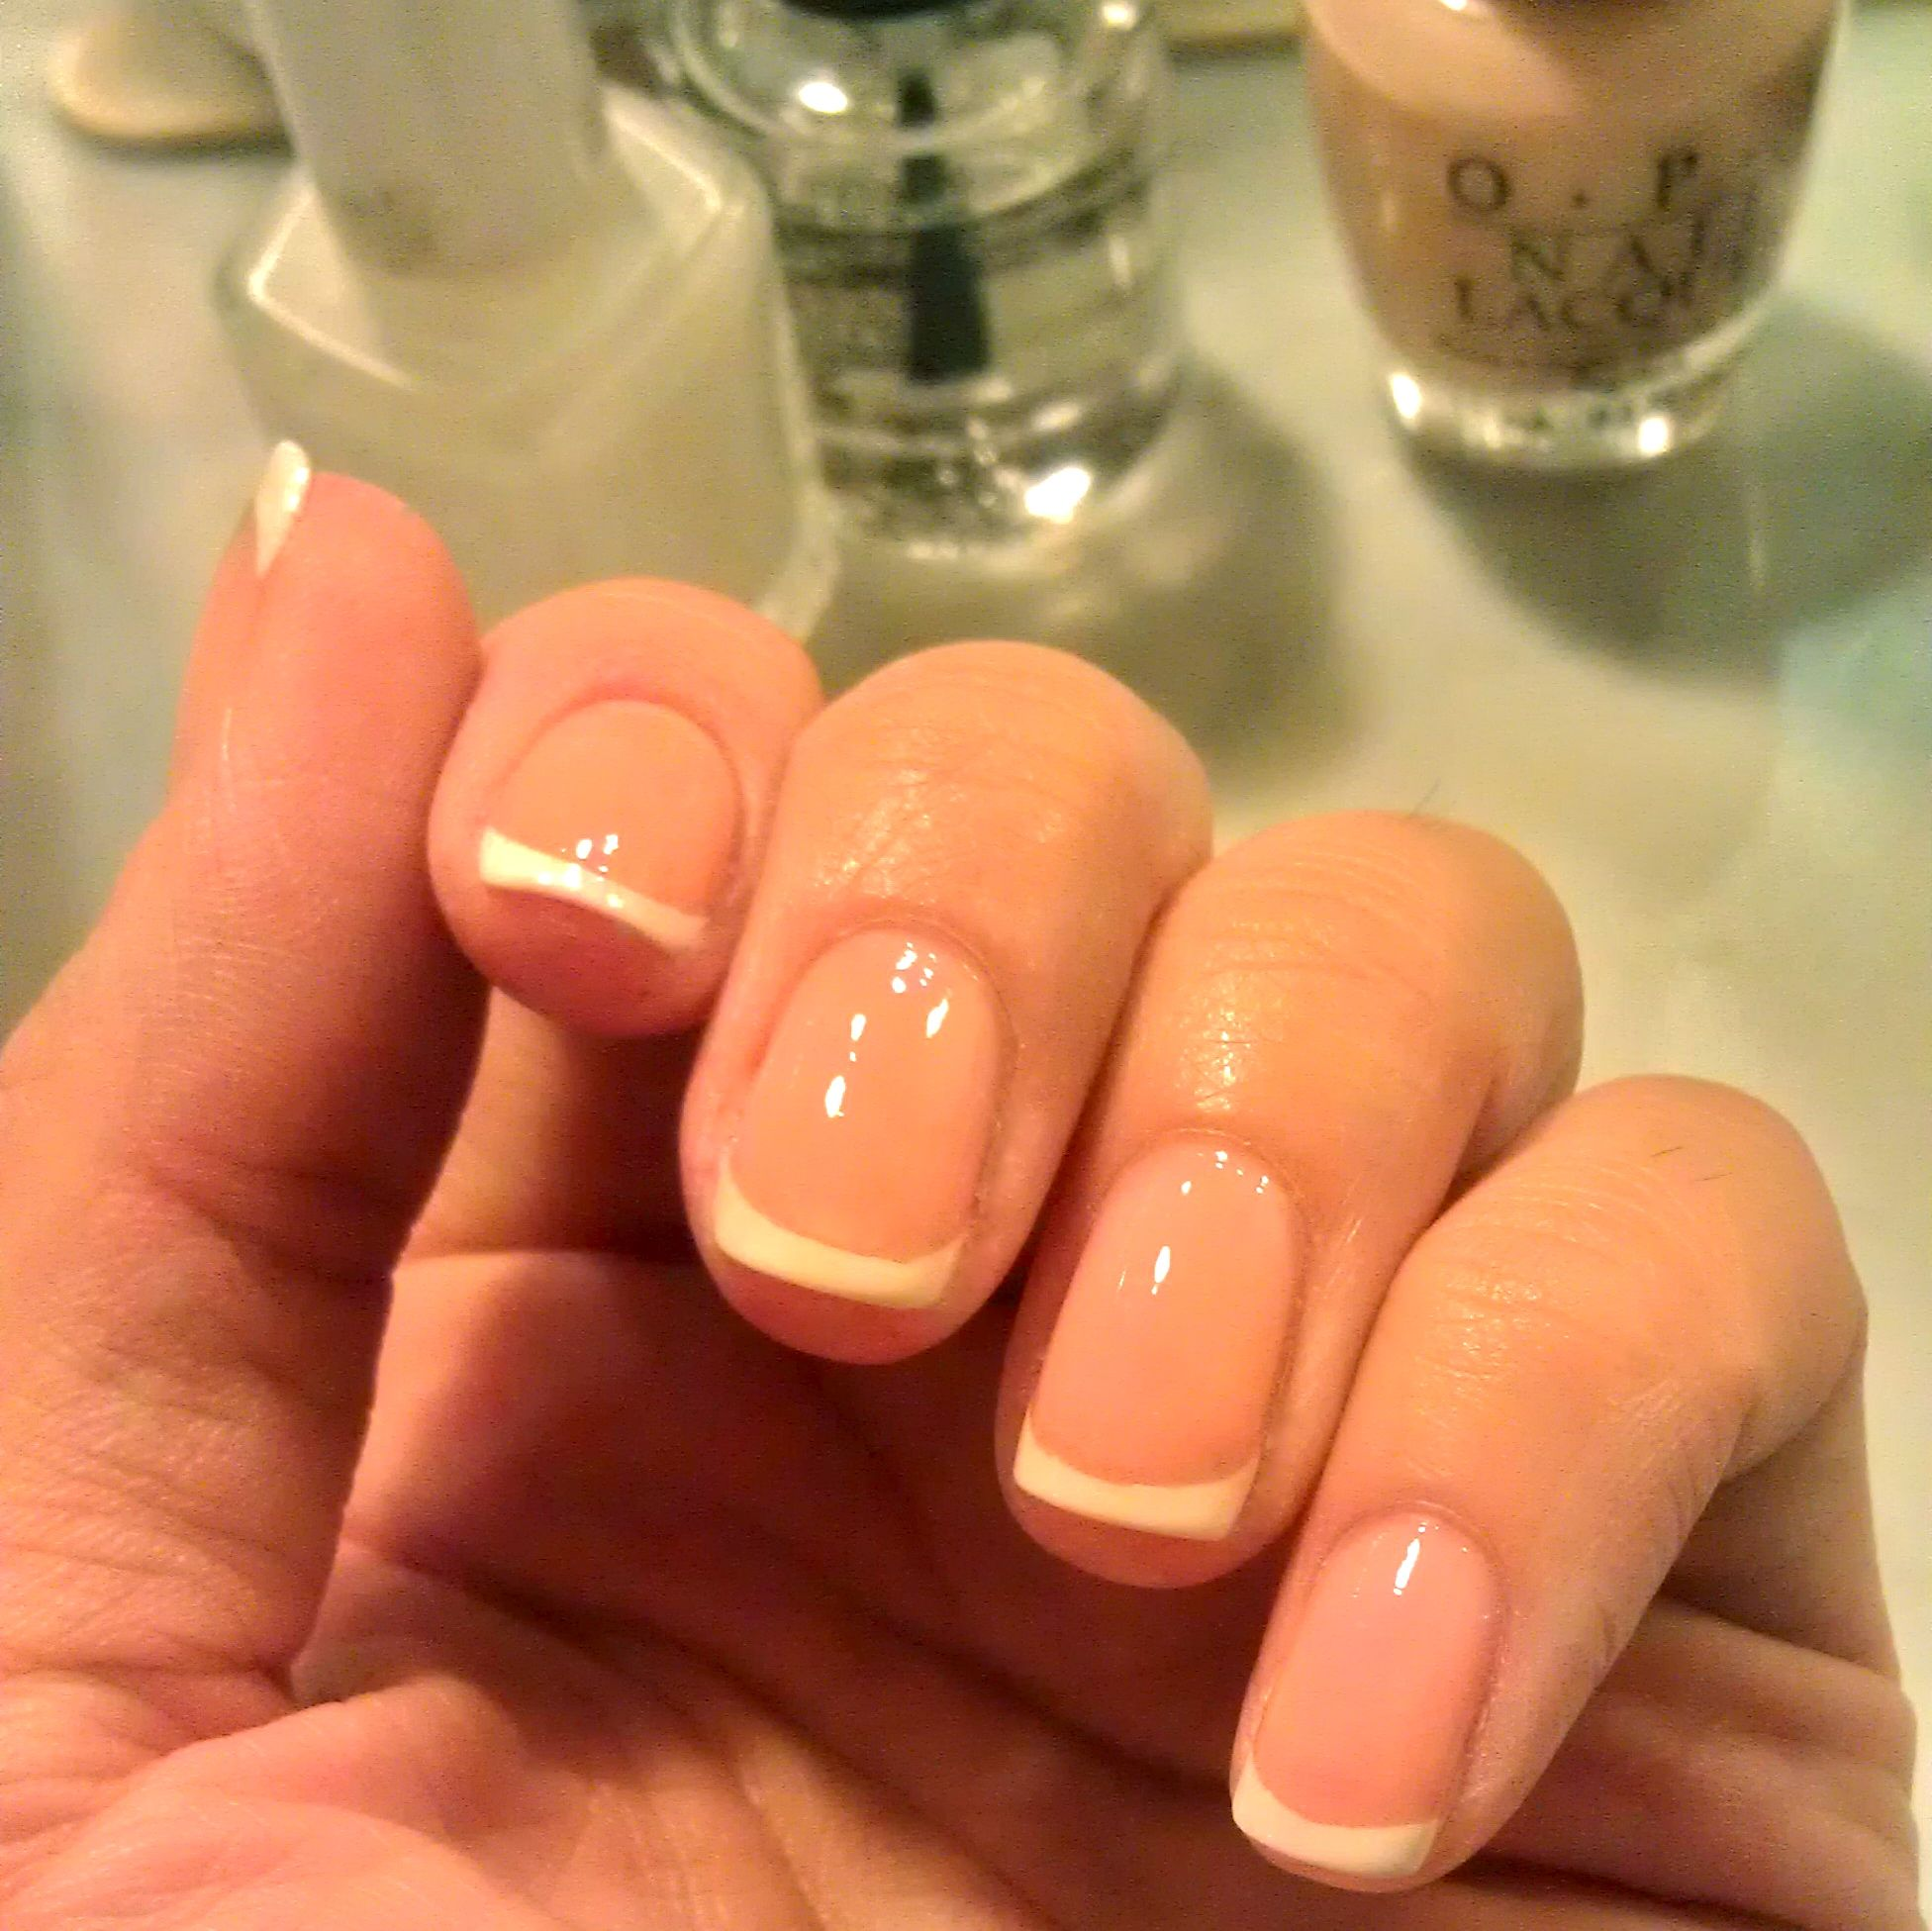 How to make your nails look like a french manicure